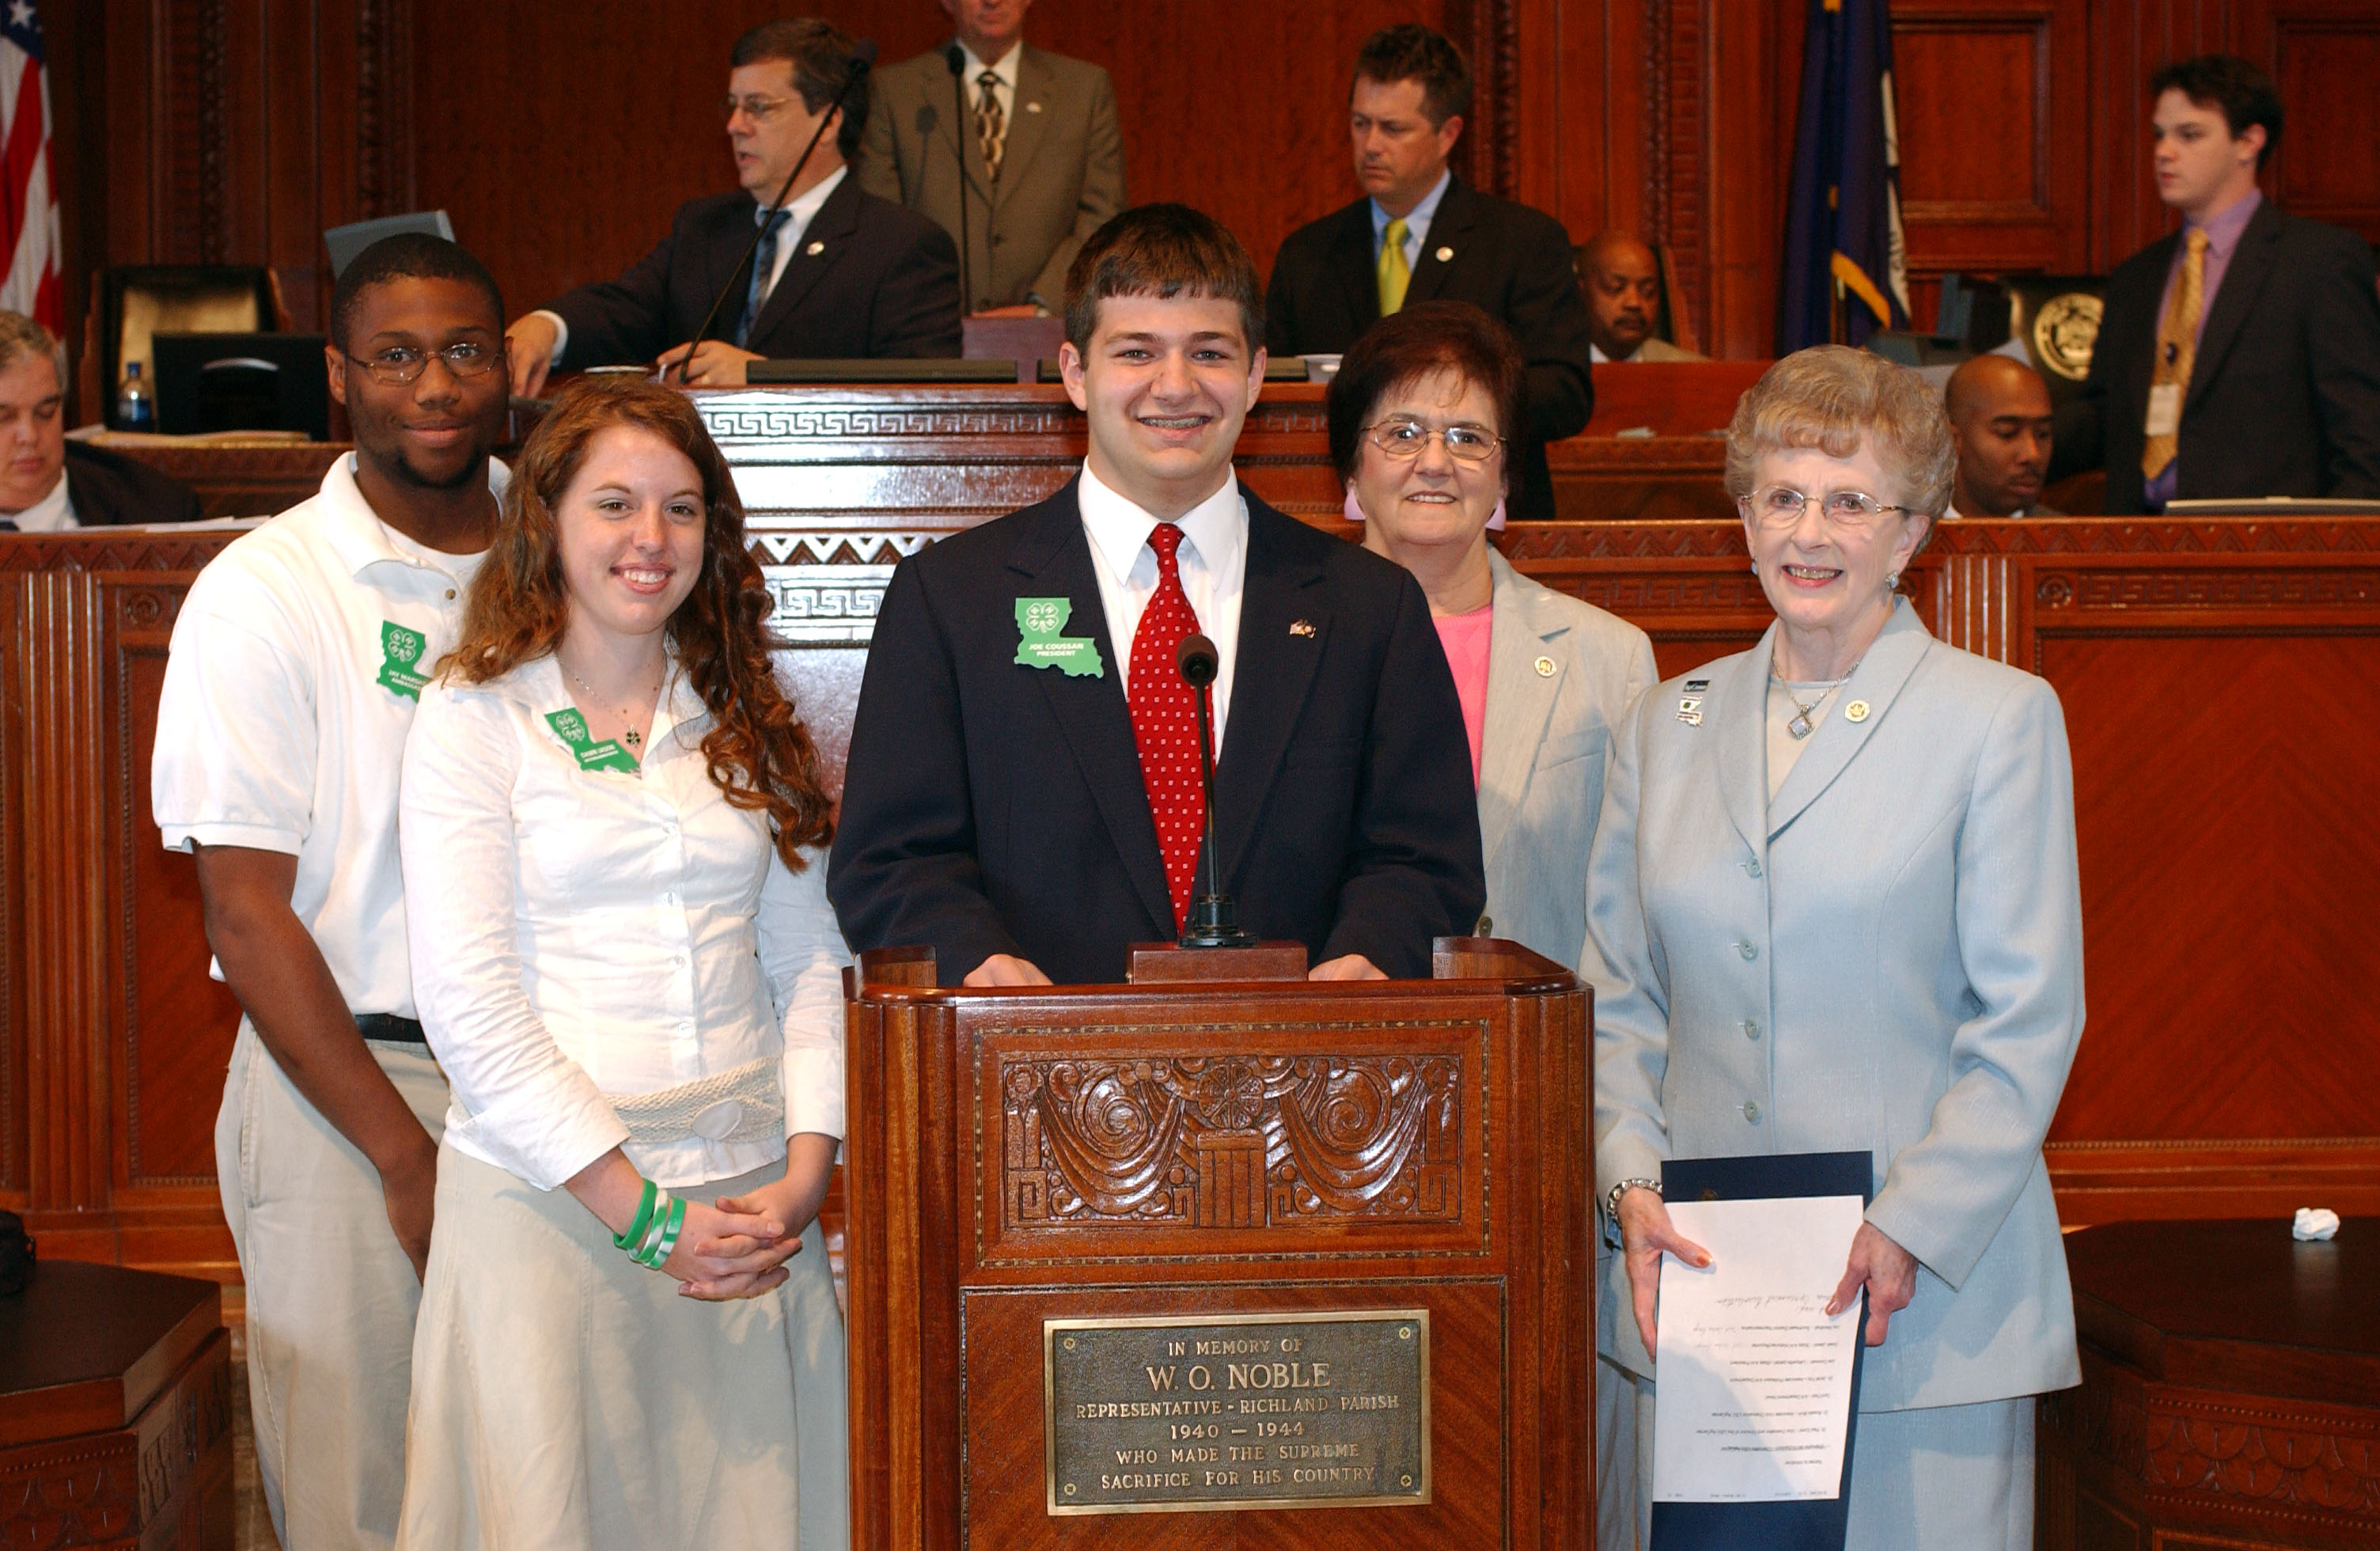 Youth From Across Louisiana Gather For 4-H Day At Capitol